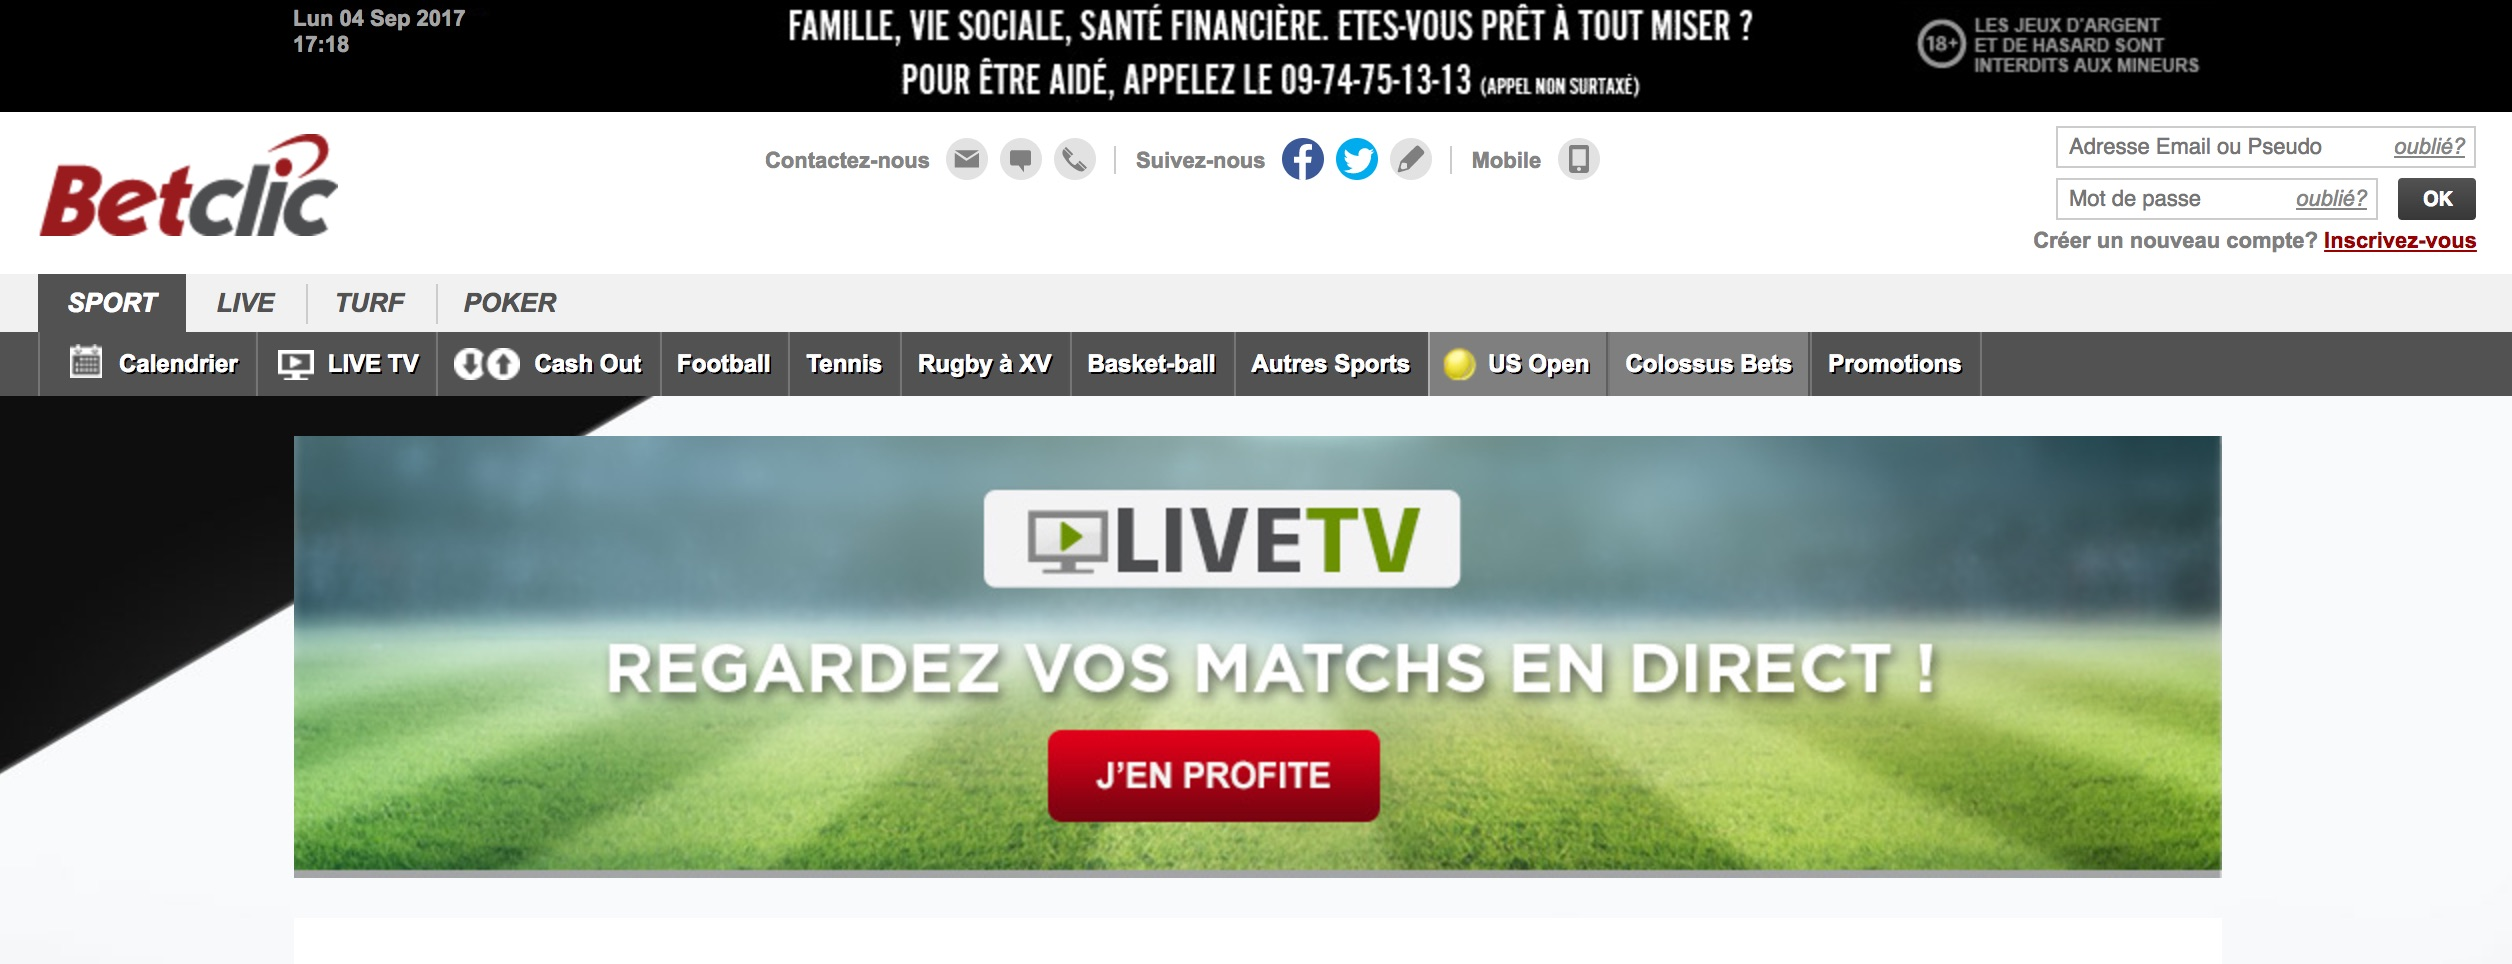 Comparatif de l'offre légale de streaming des bookmakers